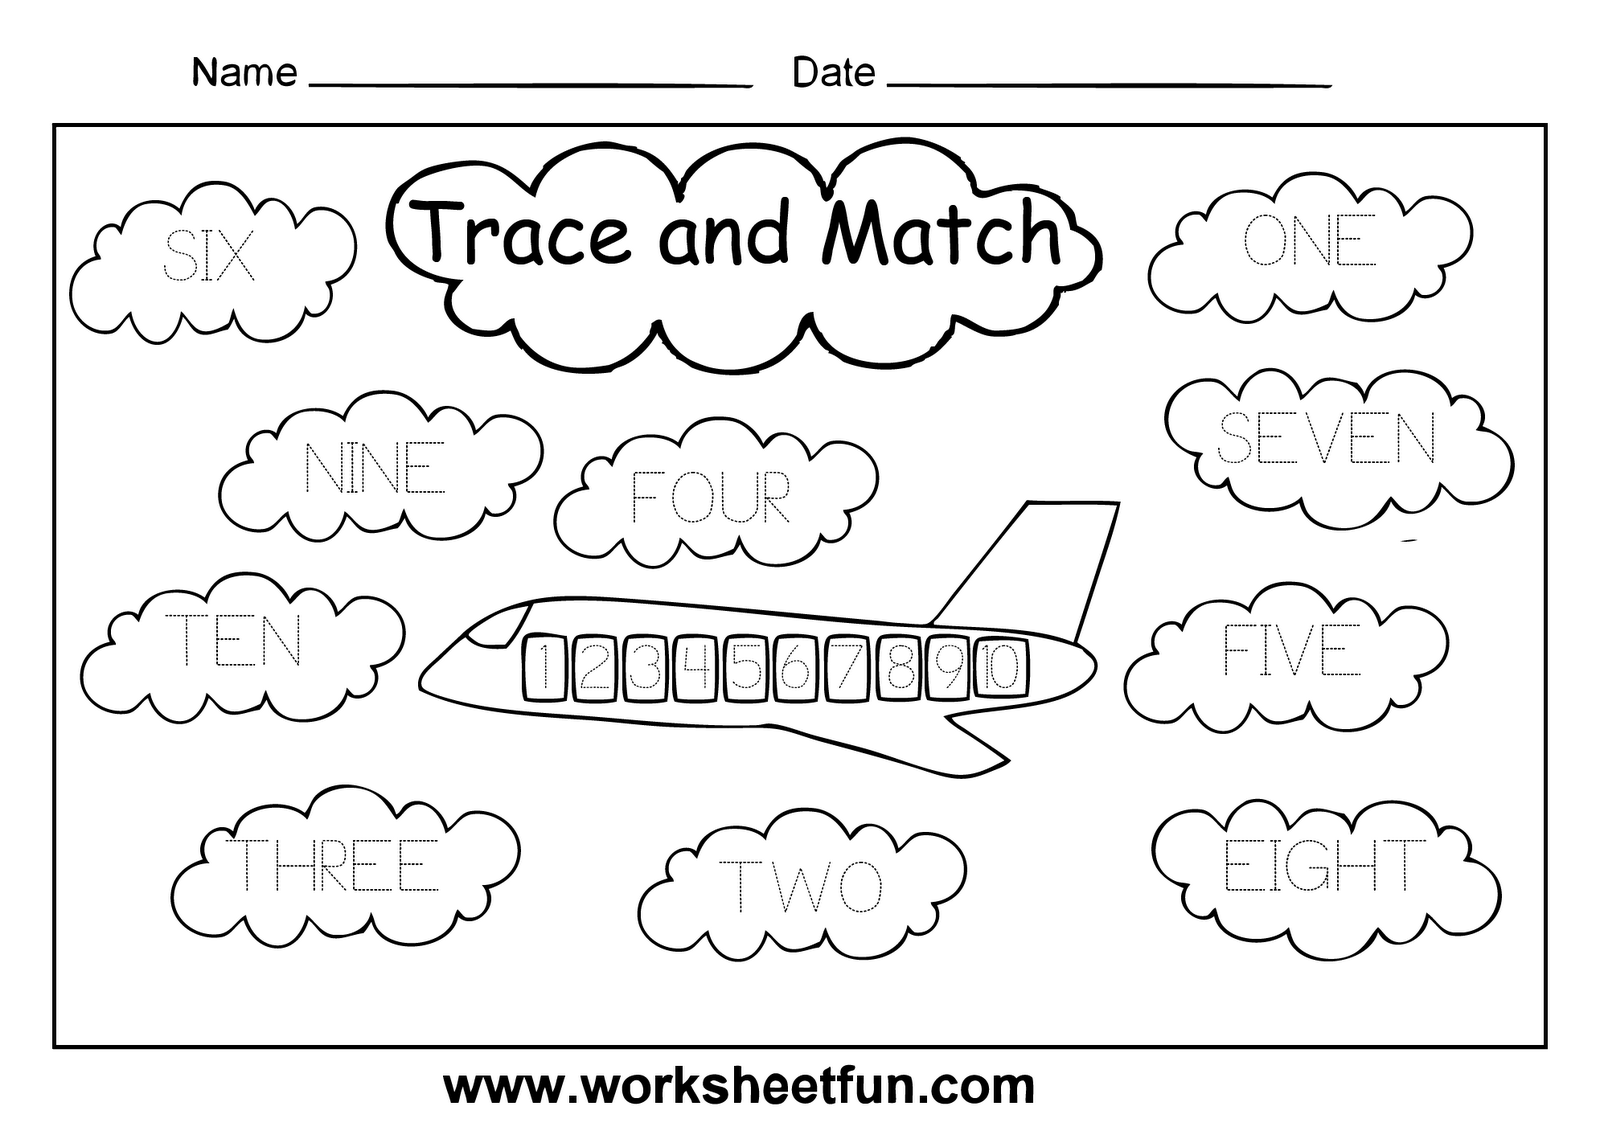 Weirdmailus  Unusual Worksheet Numbers    Reocurent With Handsome Metric Practice Worksheet Besides Free Third Grade Reading Worksheets Furthermore Preterite Worksheets With Divine Super Techer Worksheets Also Writing Balanced Chemical Equations Worksheet In Addition Quotation Marks Practice Worksheets And Metaphor Vs Simile Worksheet As Well As Flip Slide Turn Worksheets Additionally Cloud Formation Worksheet From Reocurentcom With Weirdmailus  Handsome Worksheet Numbers    Reocurent With Divine Metric Practice Worksheet Besides Free Third Grade Reading Worksheets Furthermore Preterite Worksheets And Unusual Super Techer Worksheets Also Writing Balanced Chemical Equations Worksheet In Addition Quotation Marks Practice Worksheets From Reocurentcom